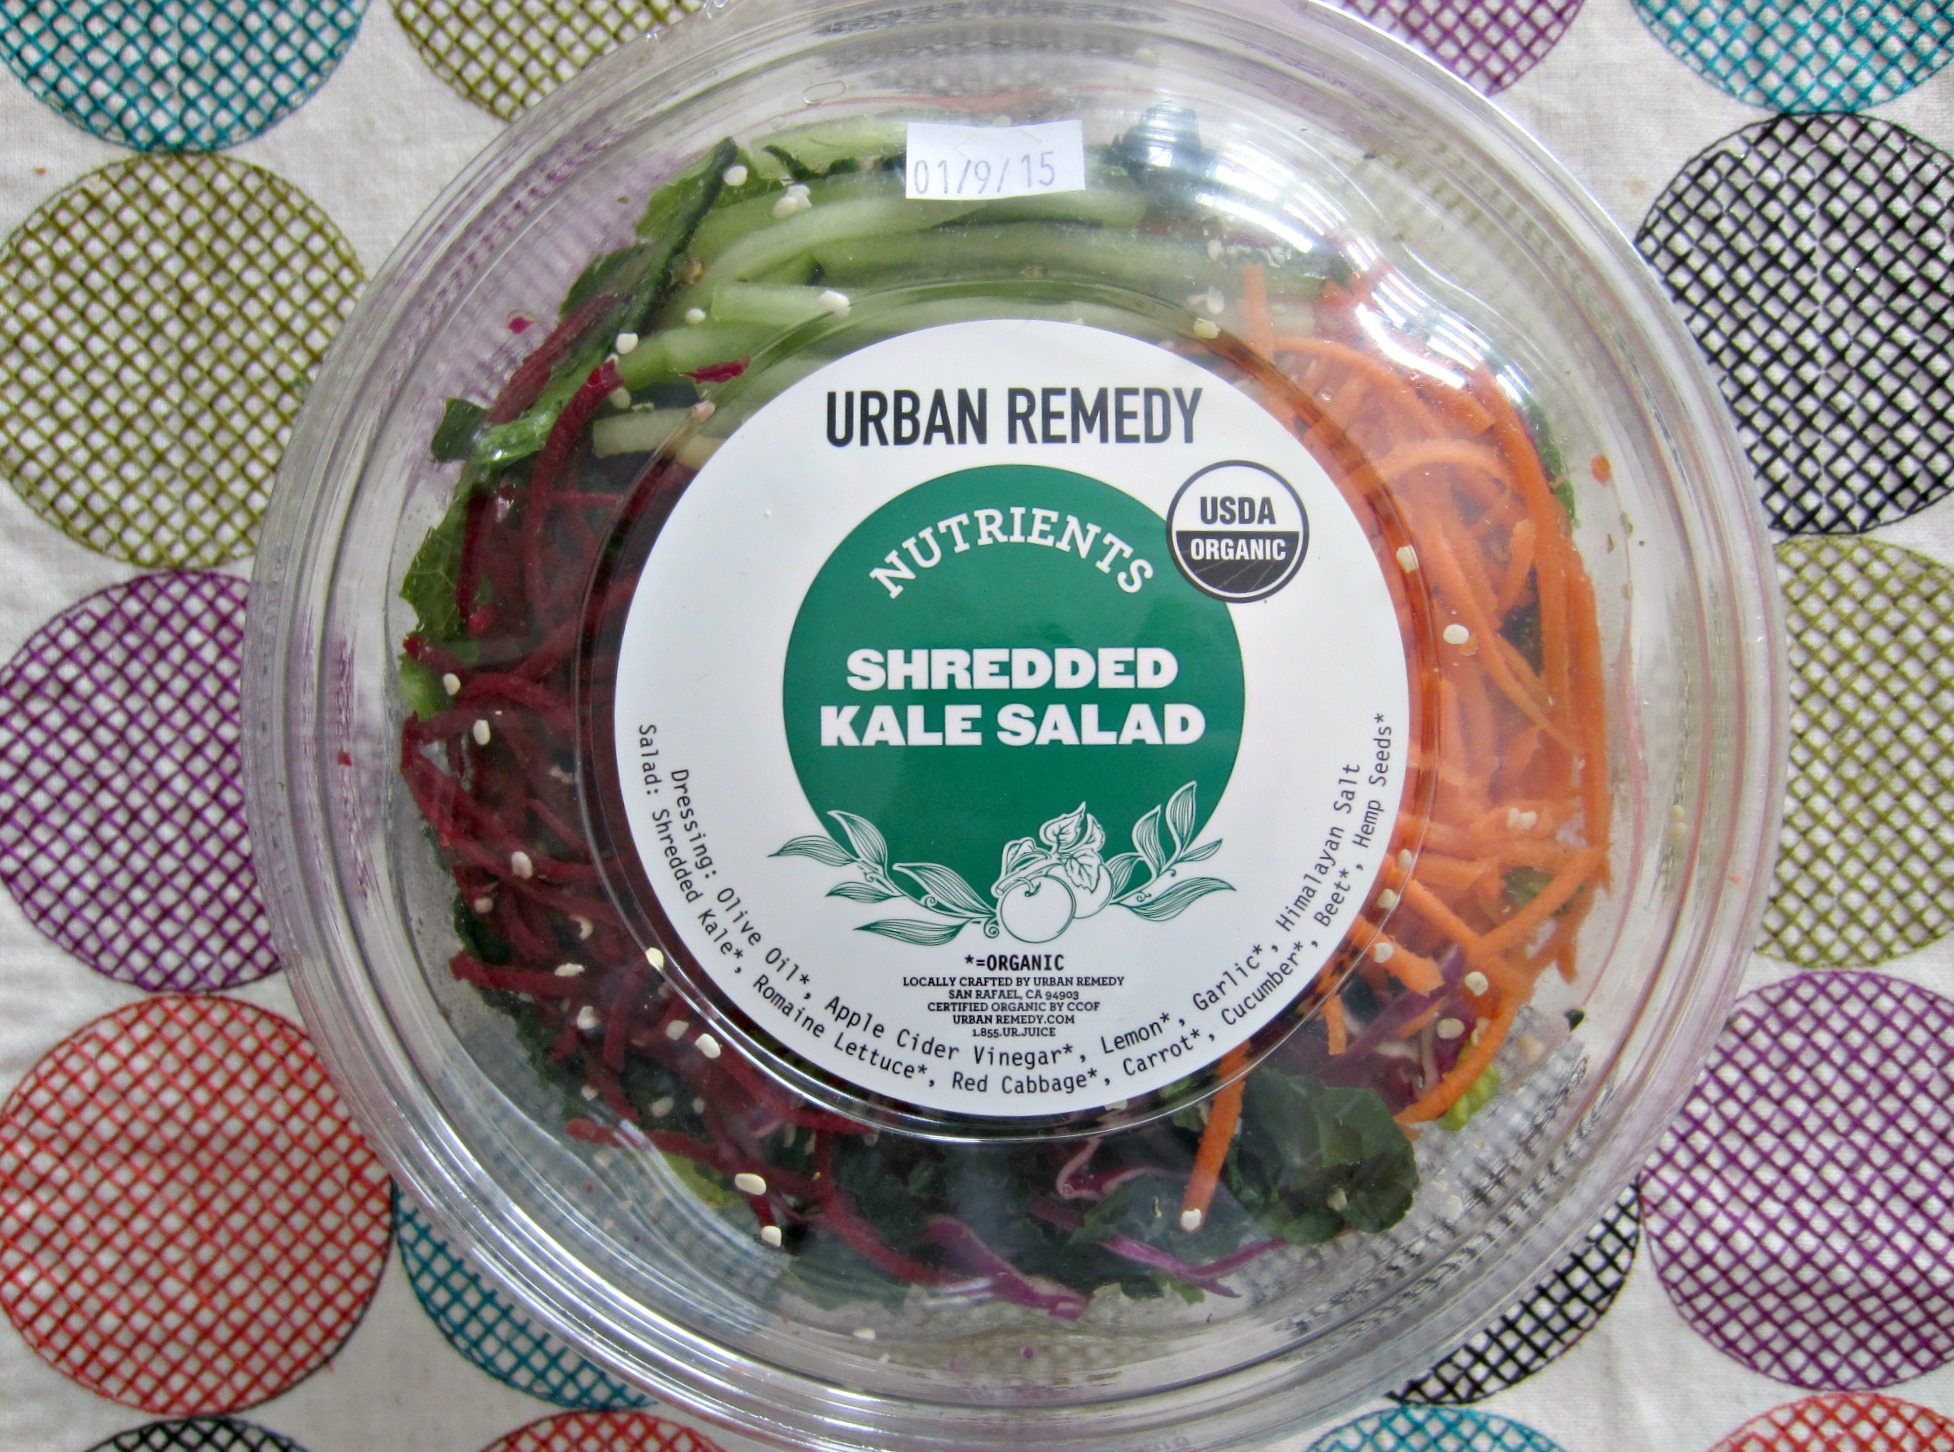 urban remedy shredded kale salad